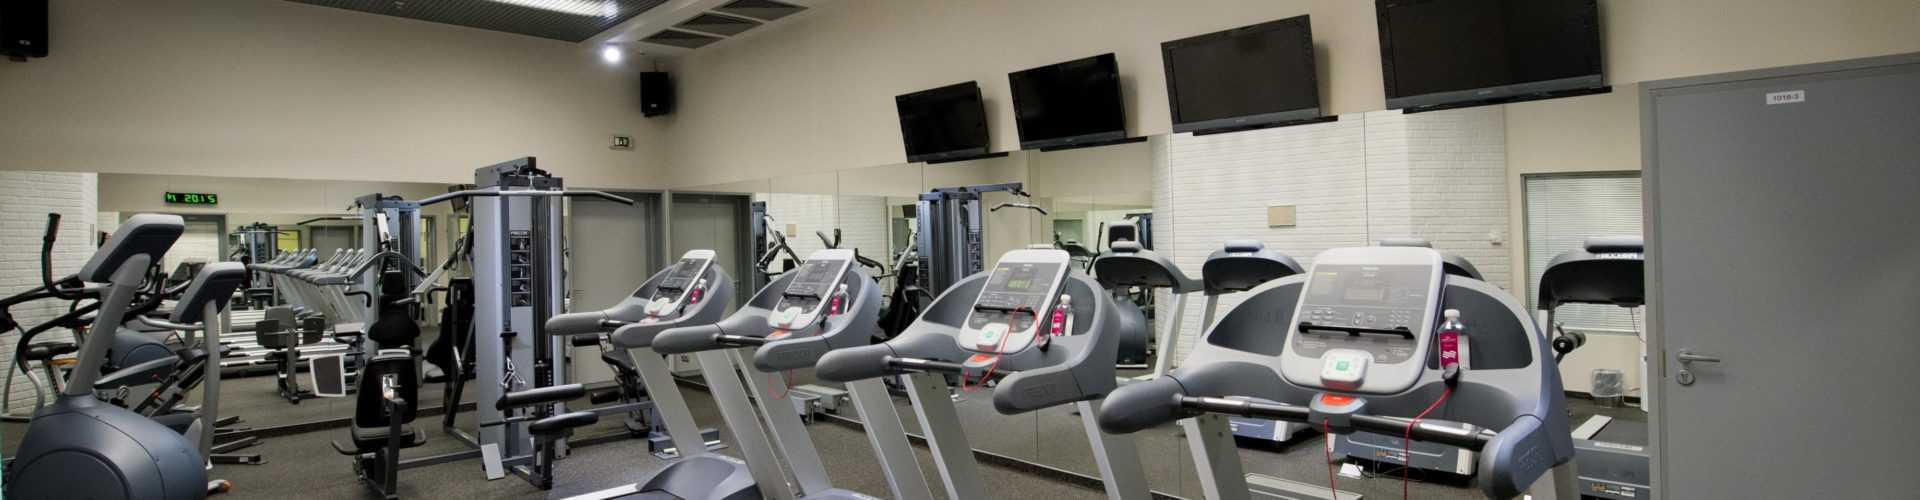 Fitness Center Crowne Plaza Moscow Spa Treatment Spor Tools